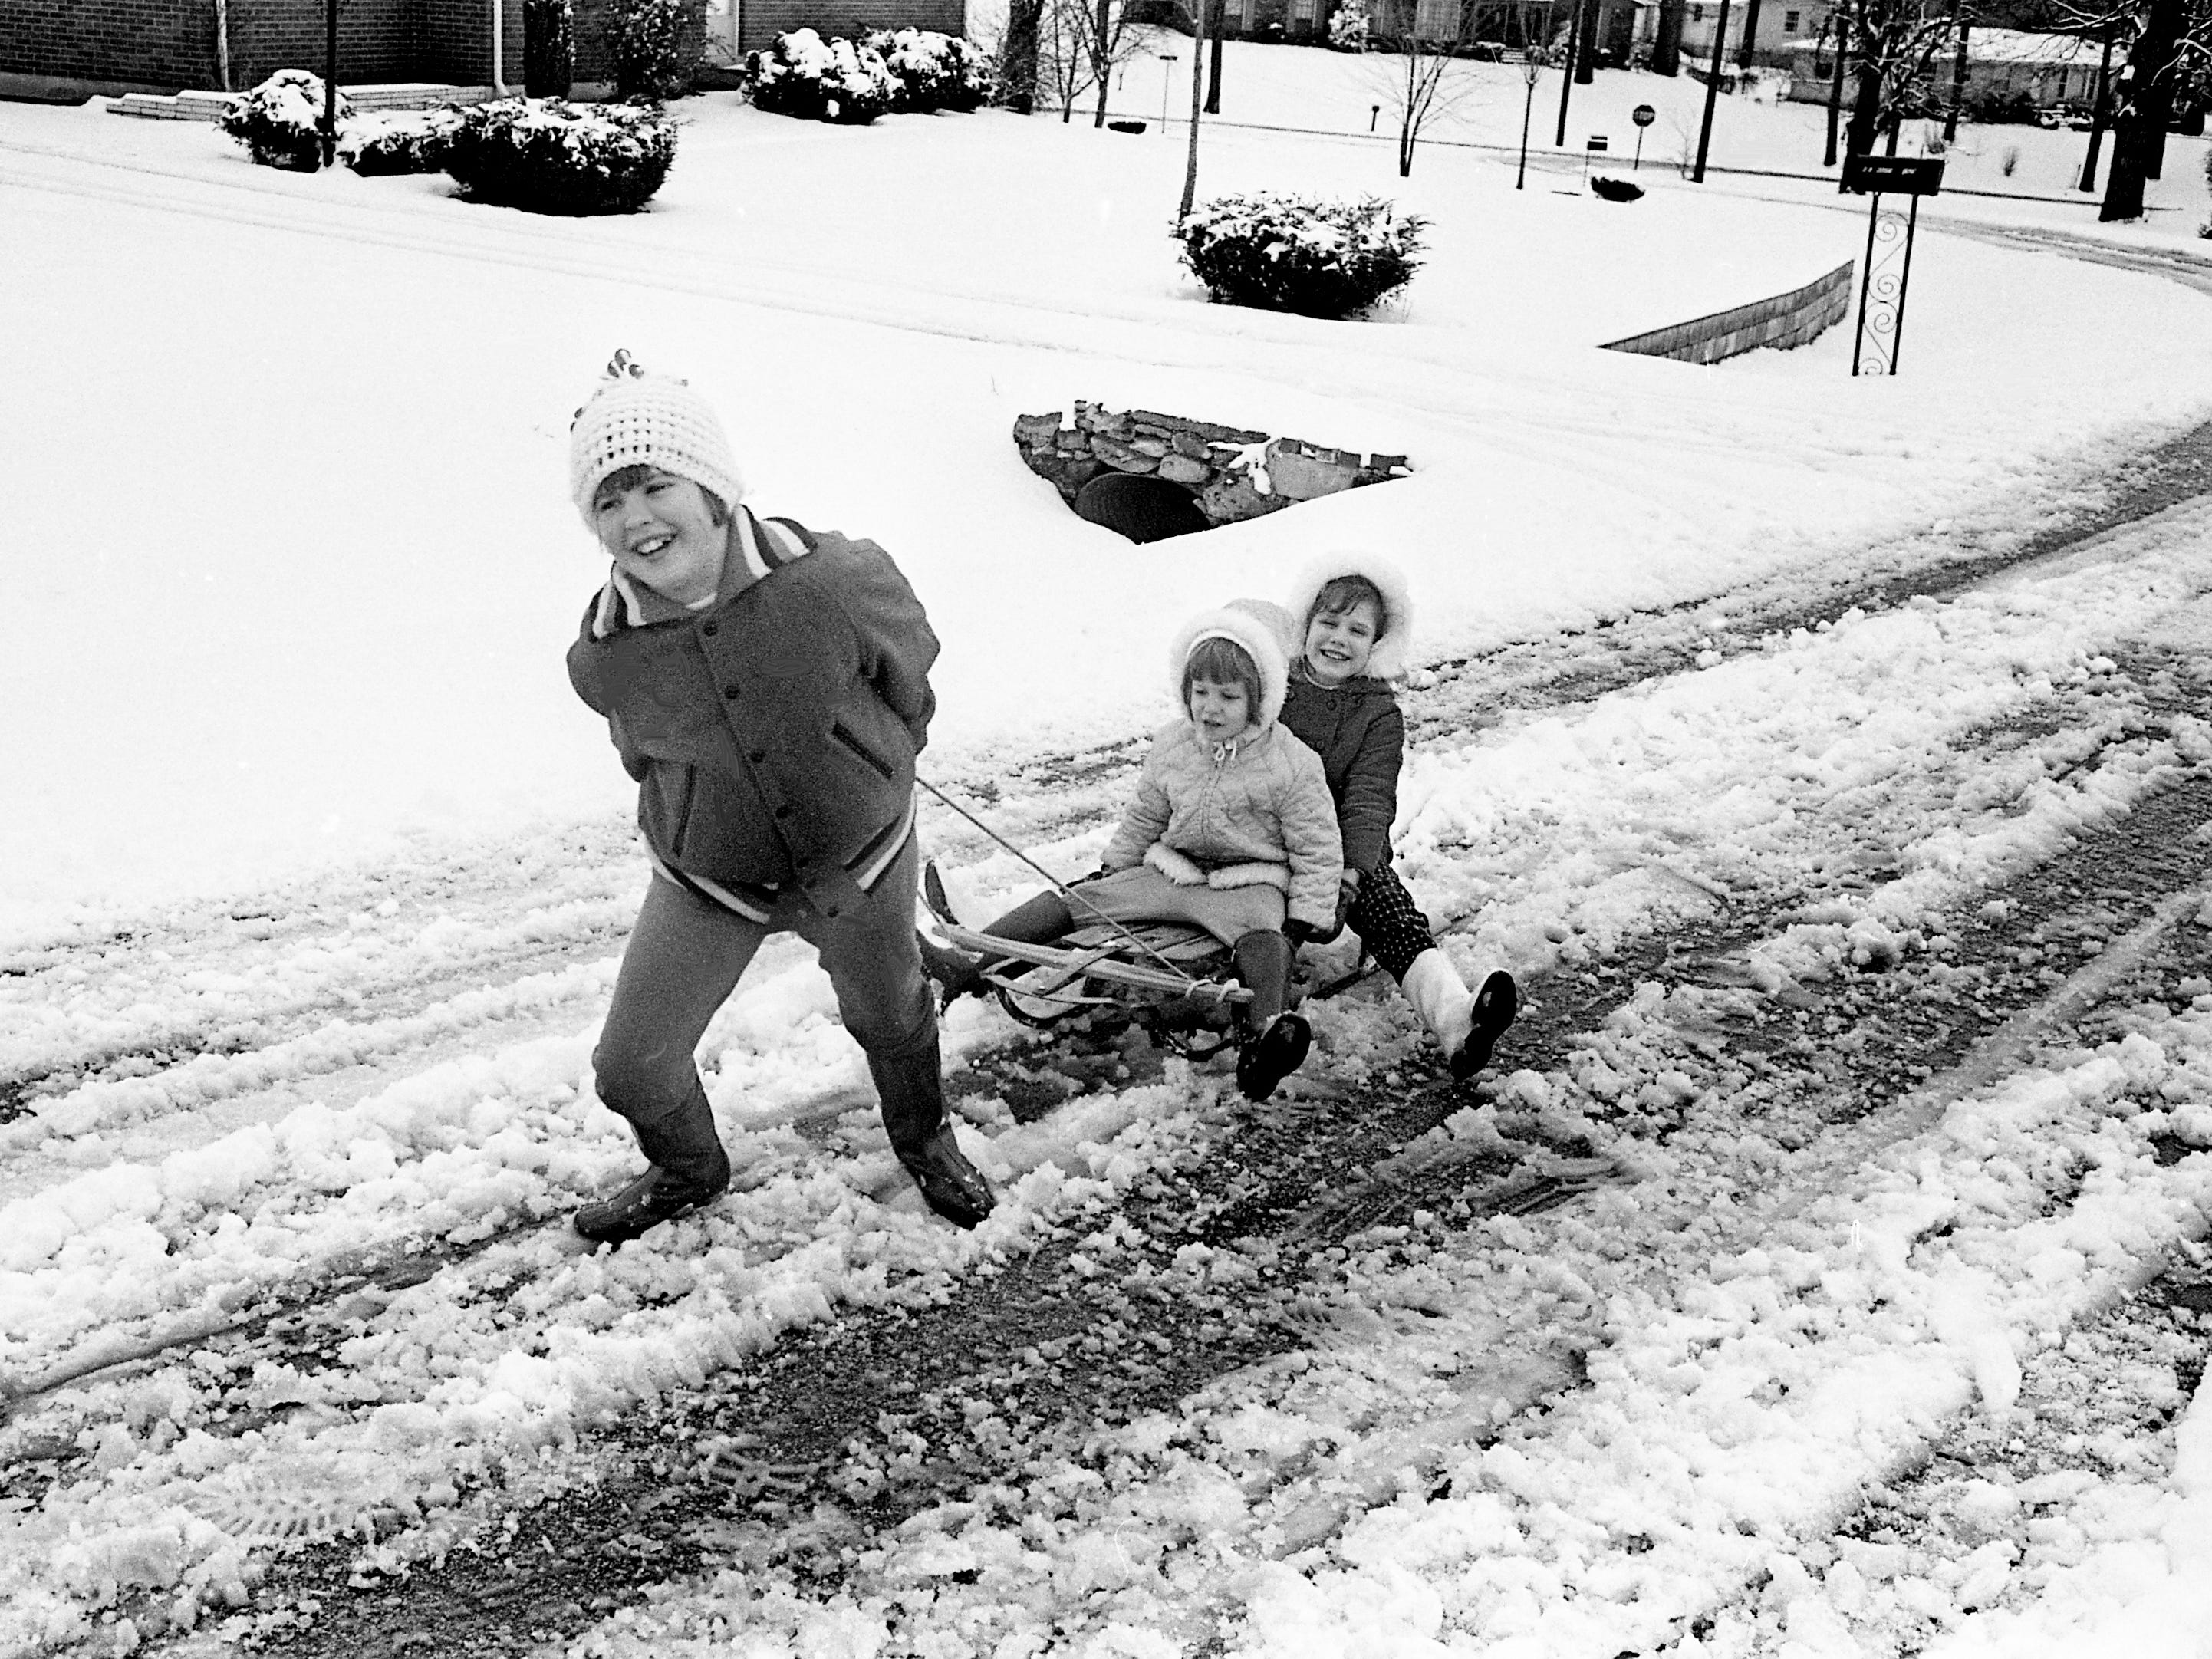 Tracey Cline does all the work as she pulls along her sister, Kim, and friend Laurie Campbell on their street, Valley Park Drive, after more snow blanketed the city Jan. 27, 1969. The sisters are the daughters of Mr. and Mrs. Billy Cline, and Laurie is the daughter of Mr. and Mrs. Earl Campbell.